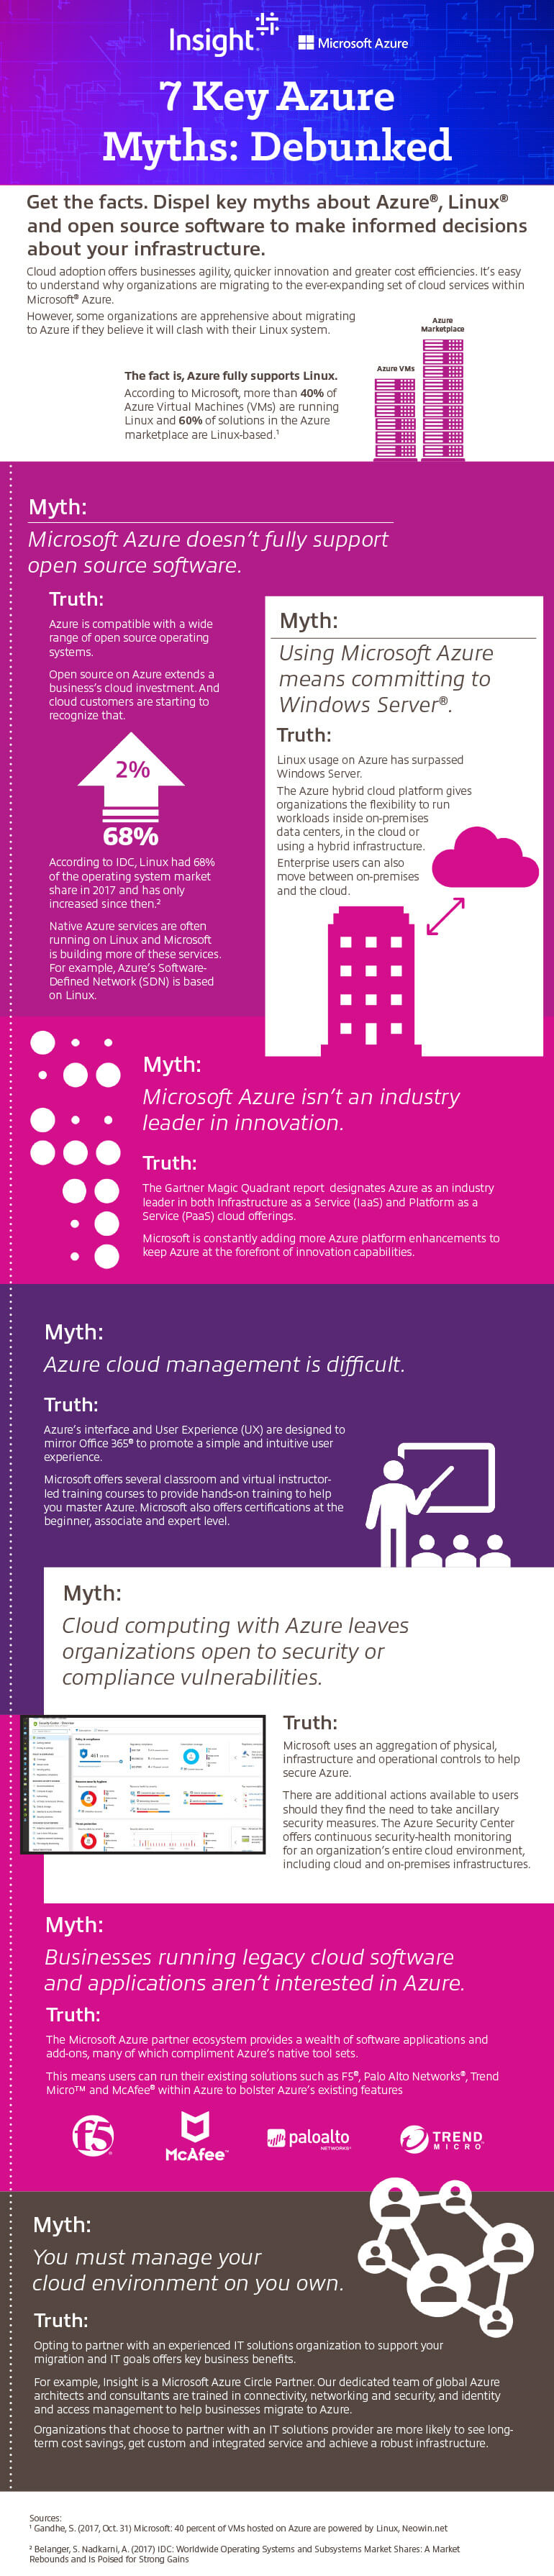 Infographic displaying Insight Dispelling Microsoft Azure Myths